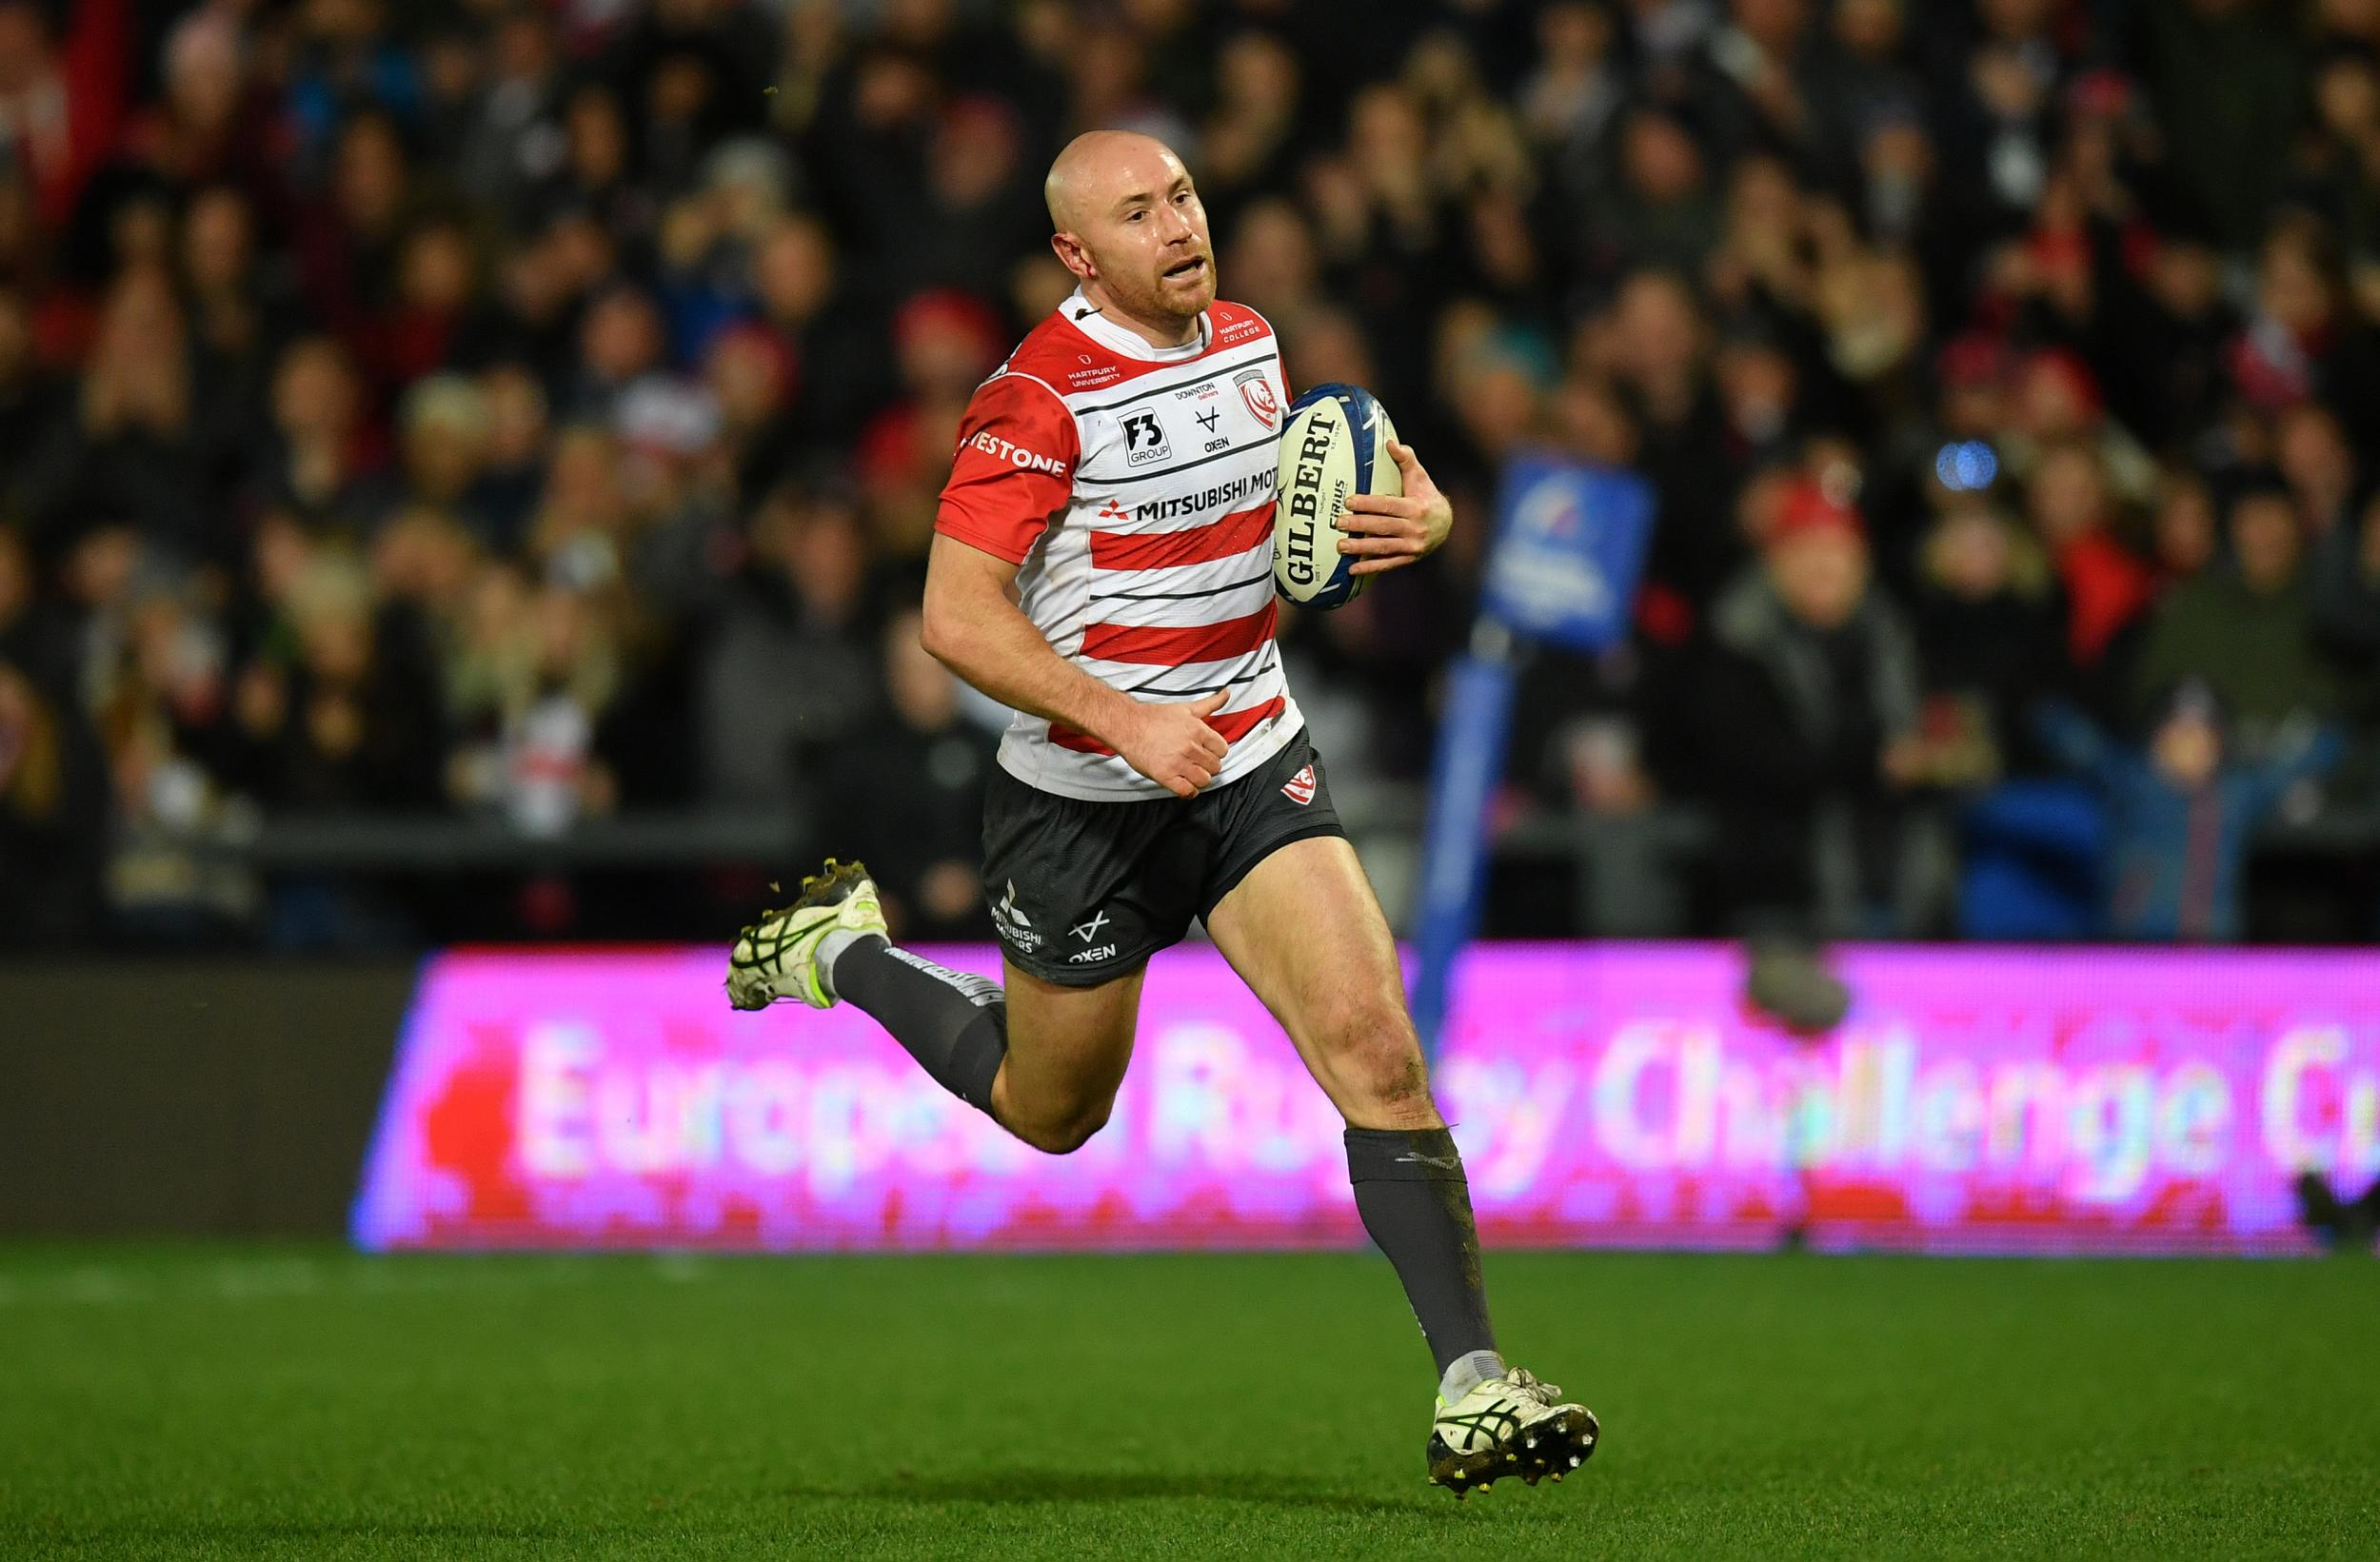 Willi Heinz sees opportunity, not crisis, for Gloucester after staff changes